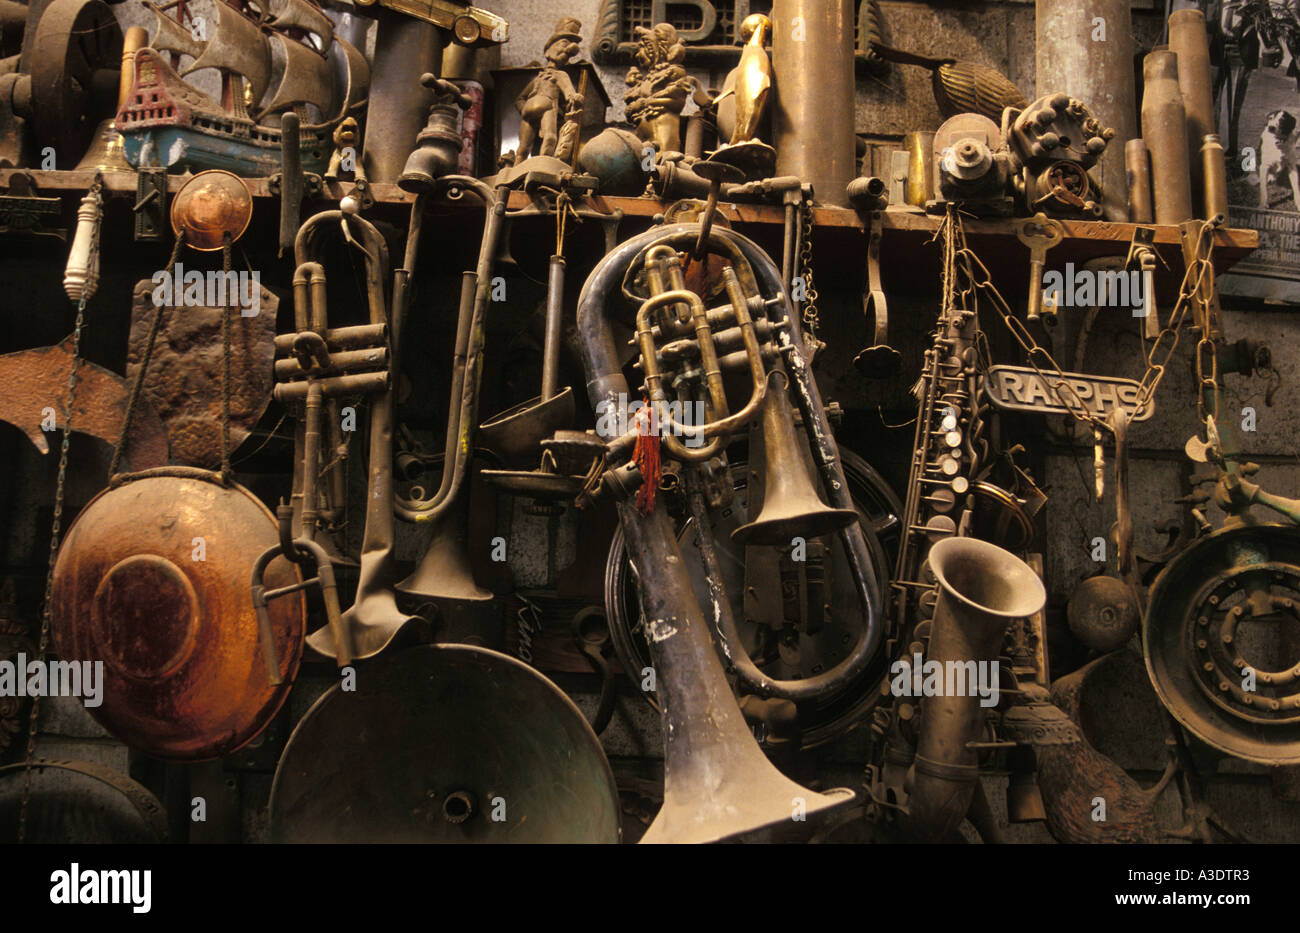 Old Brass Musical Instruments And Copper Objects Hanging